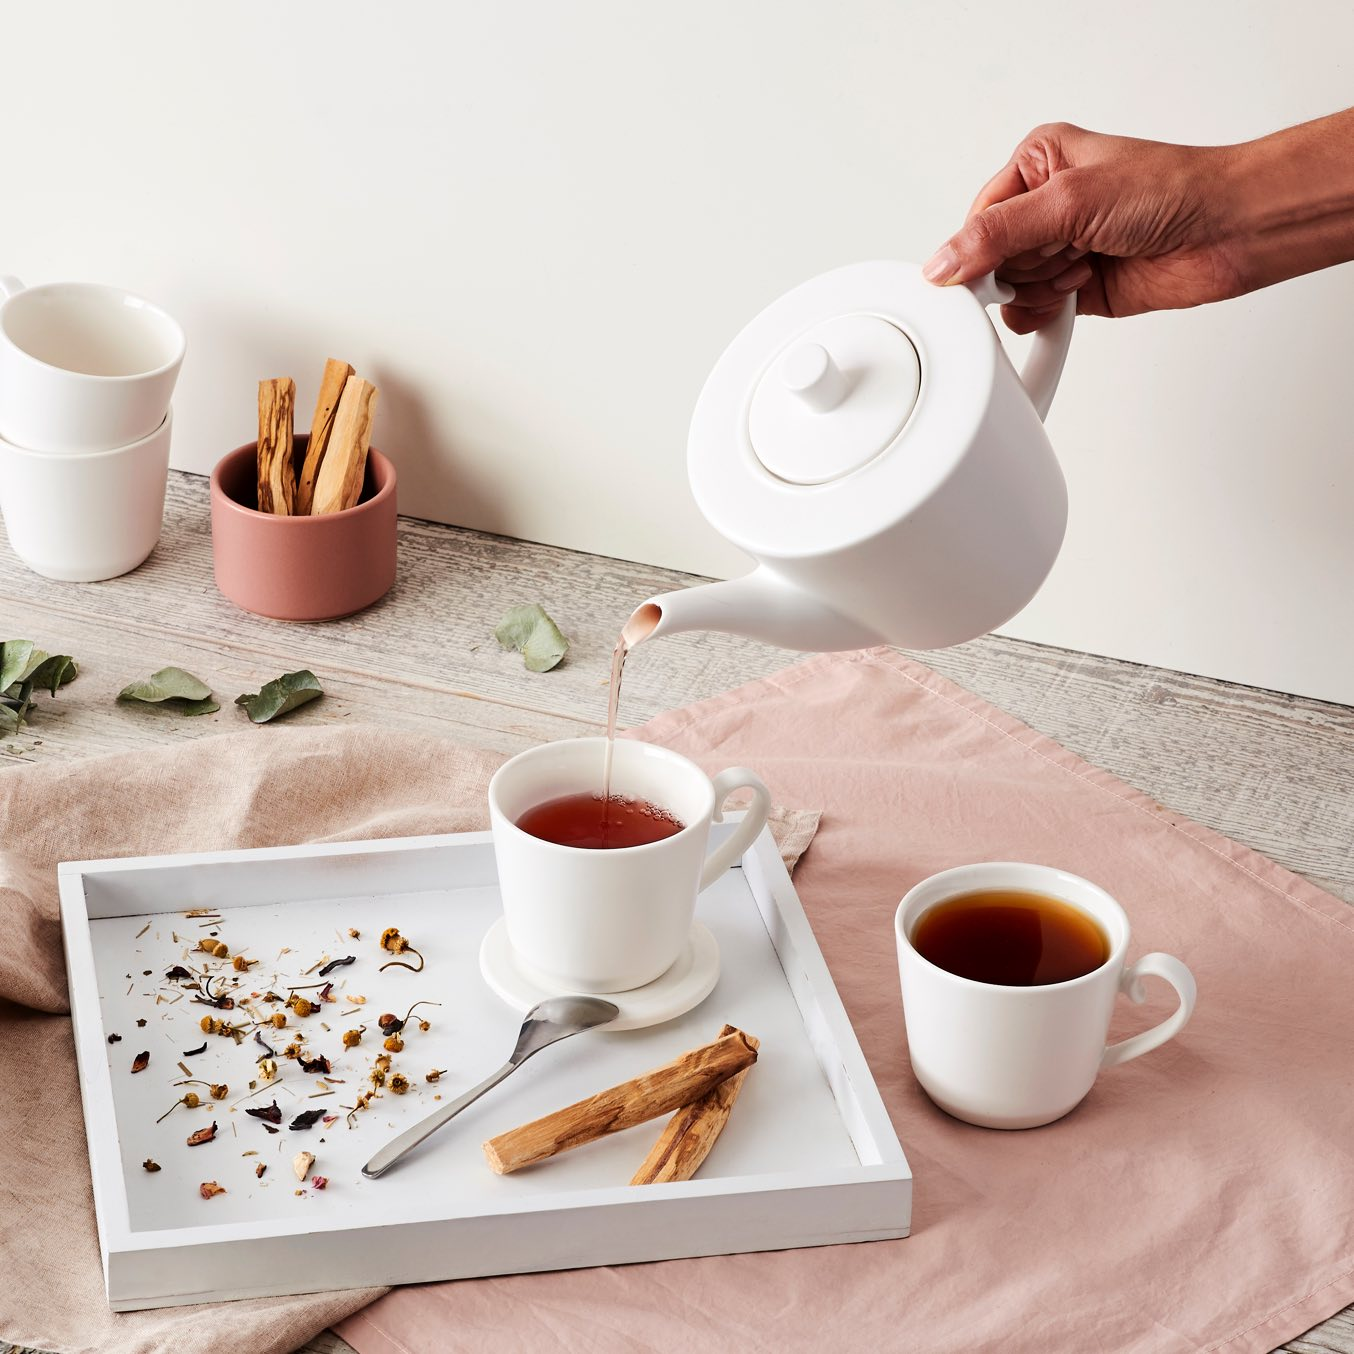 Hand pouring hot tea from white 28 oz ceramic teapot into two matching white 7 oz ceramic teacups.